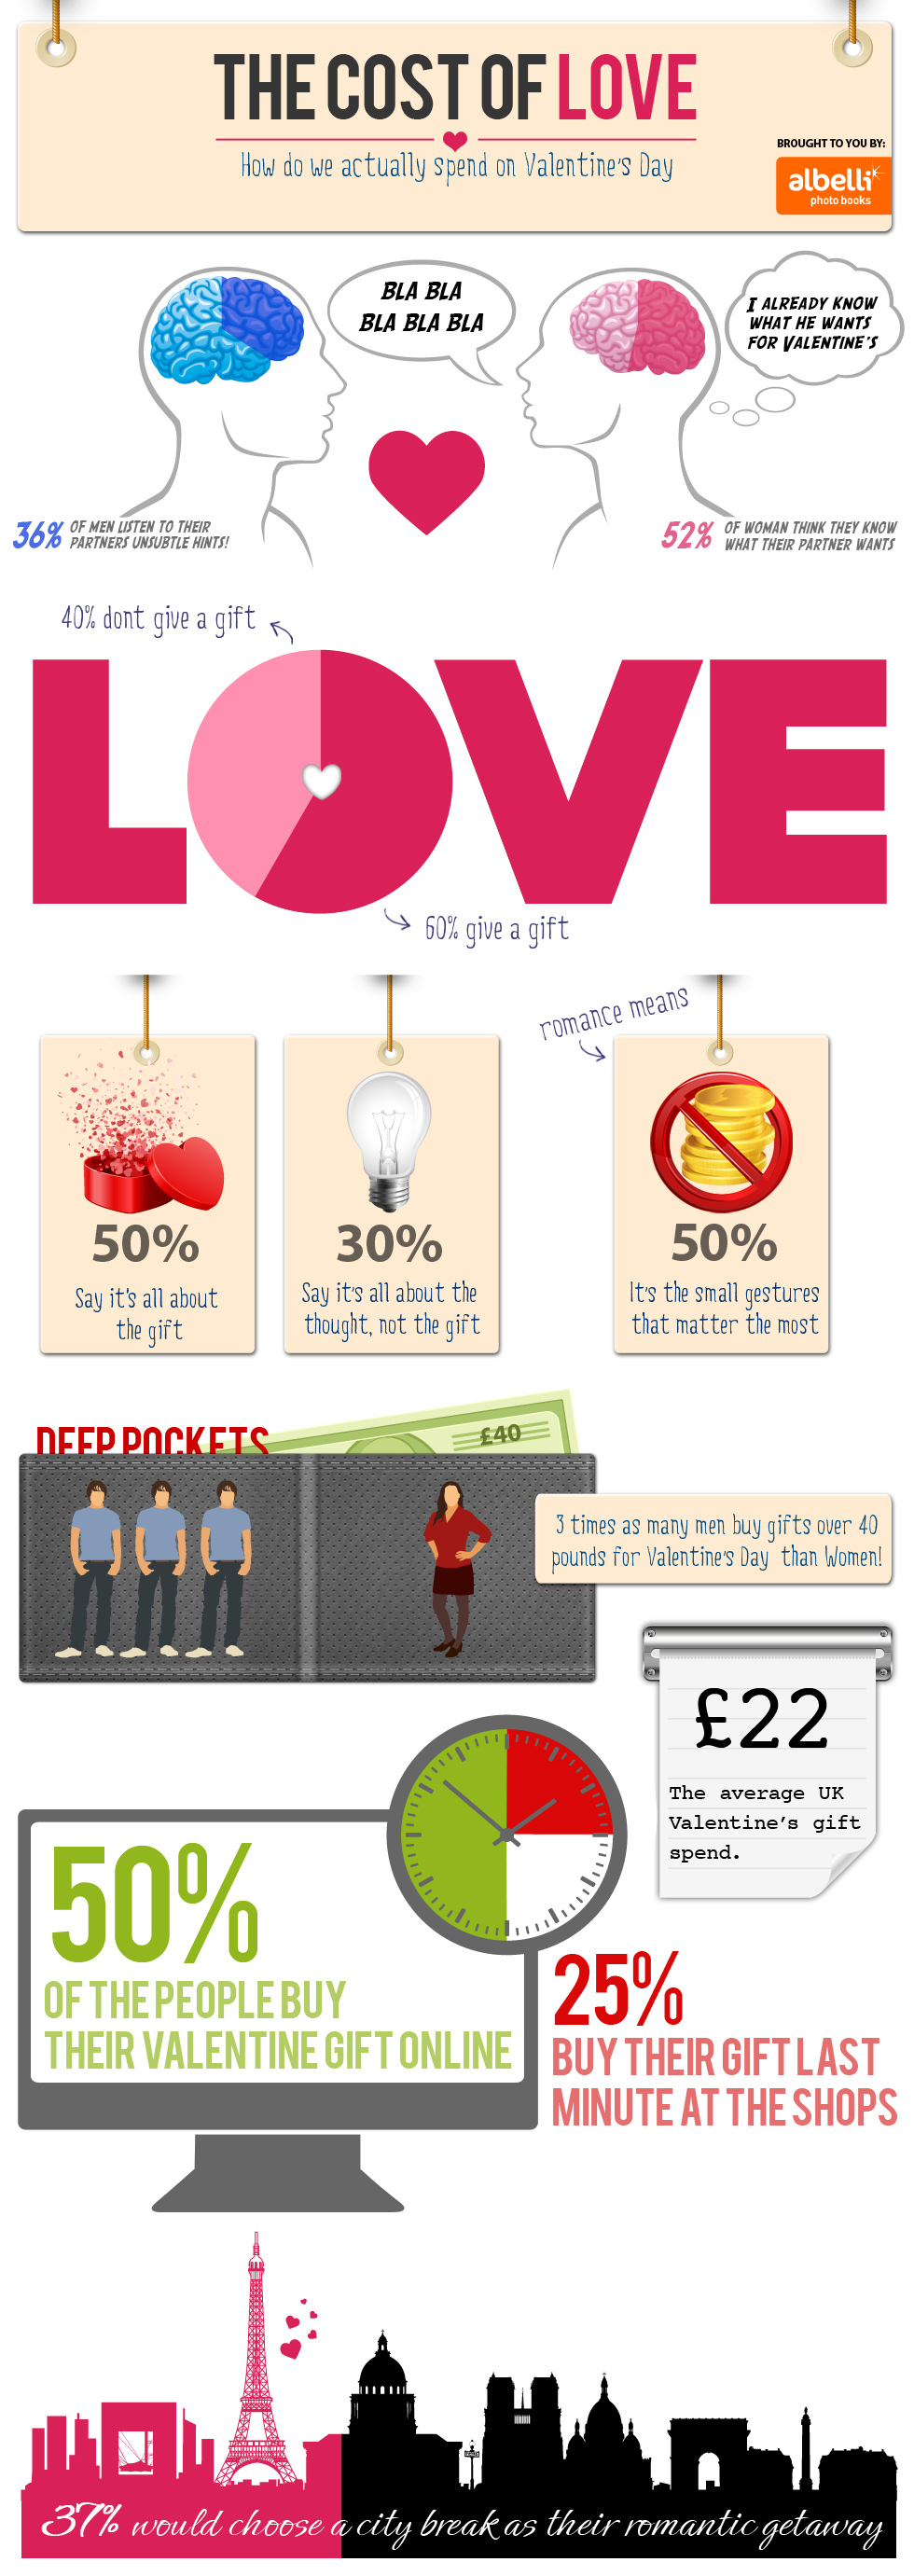 Albelli Valentines Day gifts - Infographic